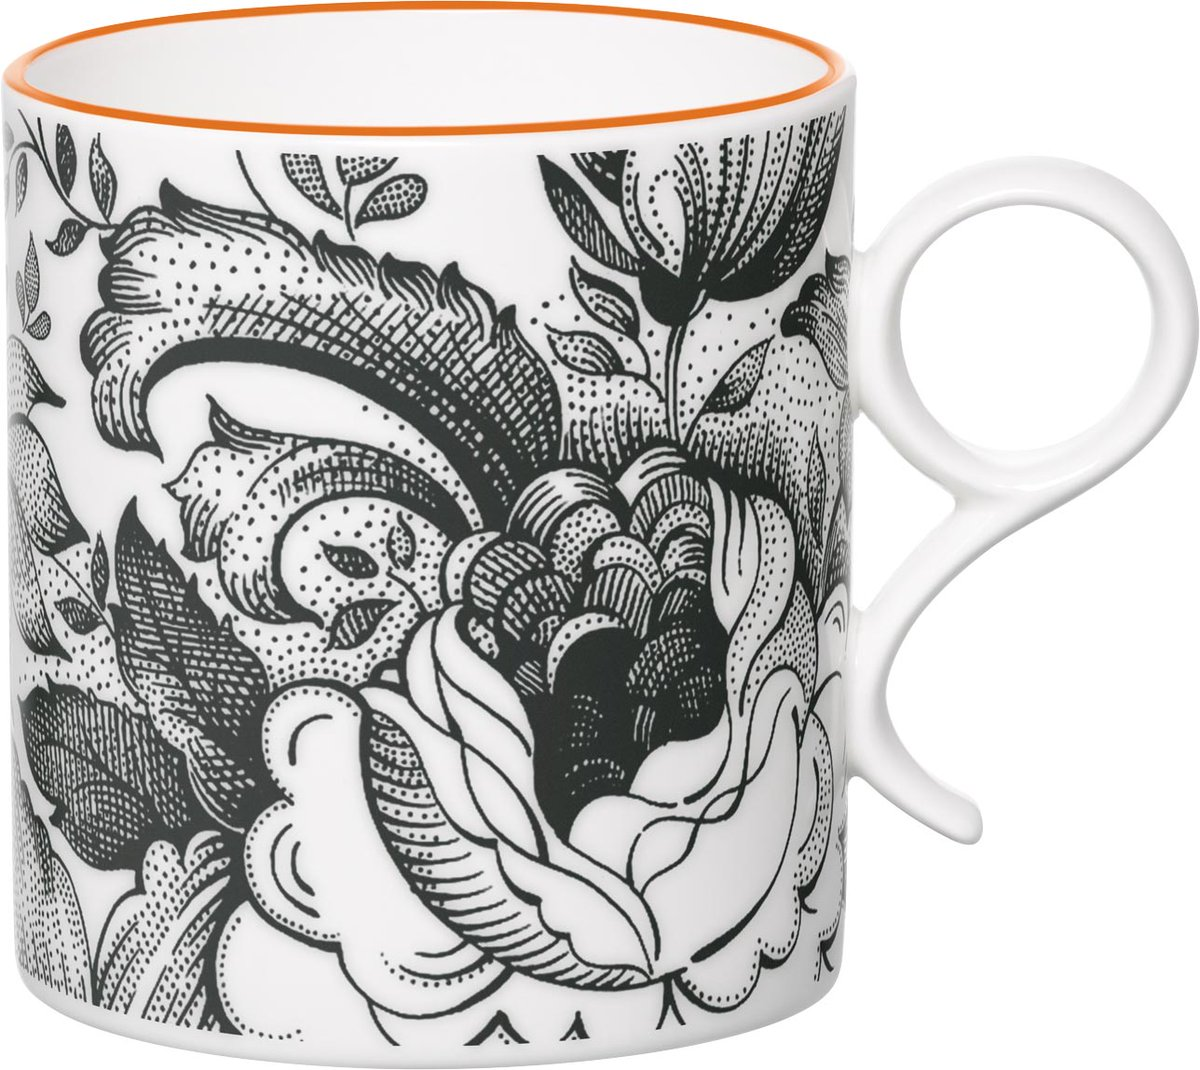 #WIN a super cool mug from @garyjamesbirks ! 56 designs to choose from! Follow & RT to enter! #Comp ends 10am 07/05 http://t.co/IWH8vs7yGp